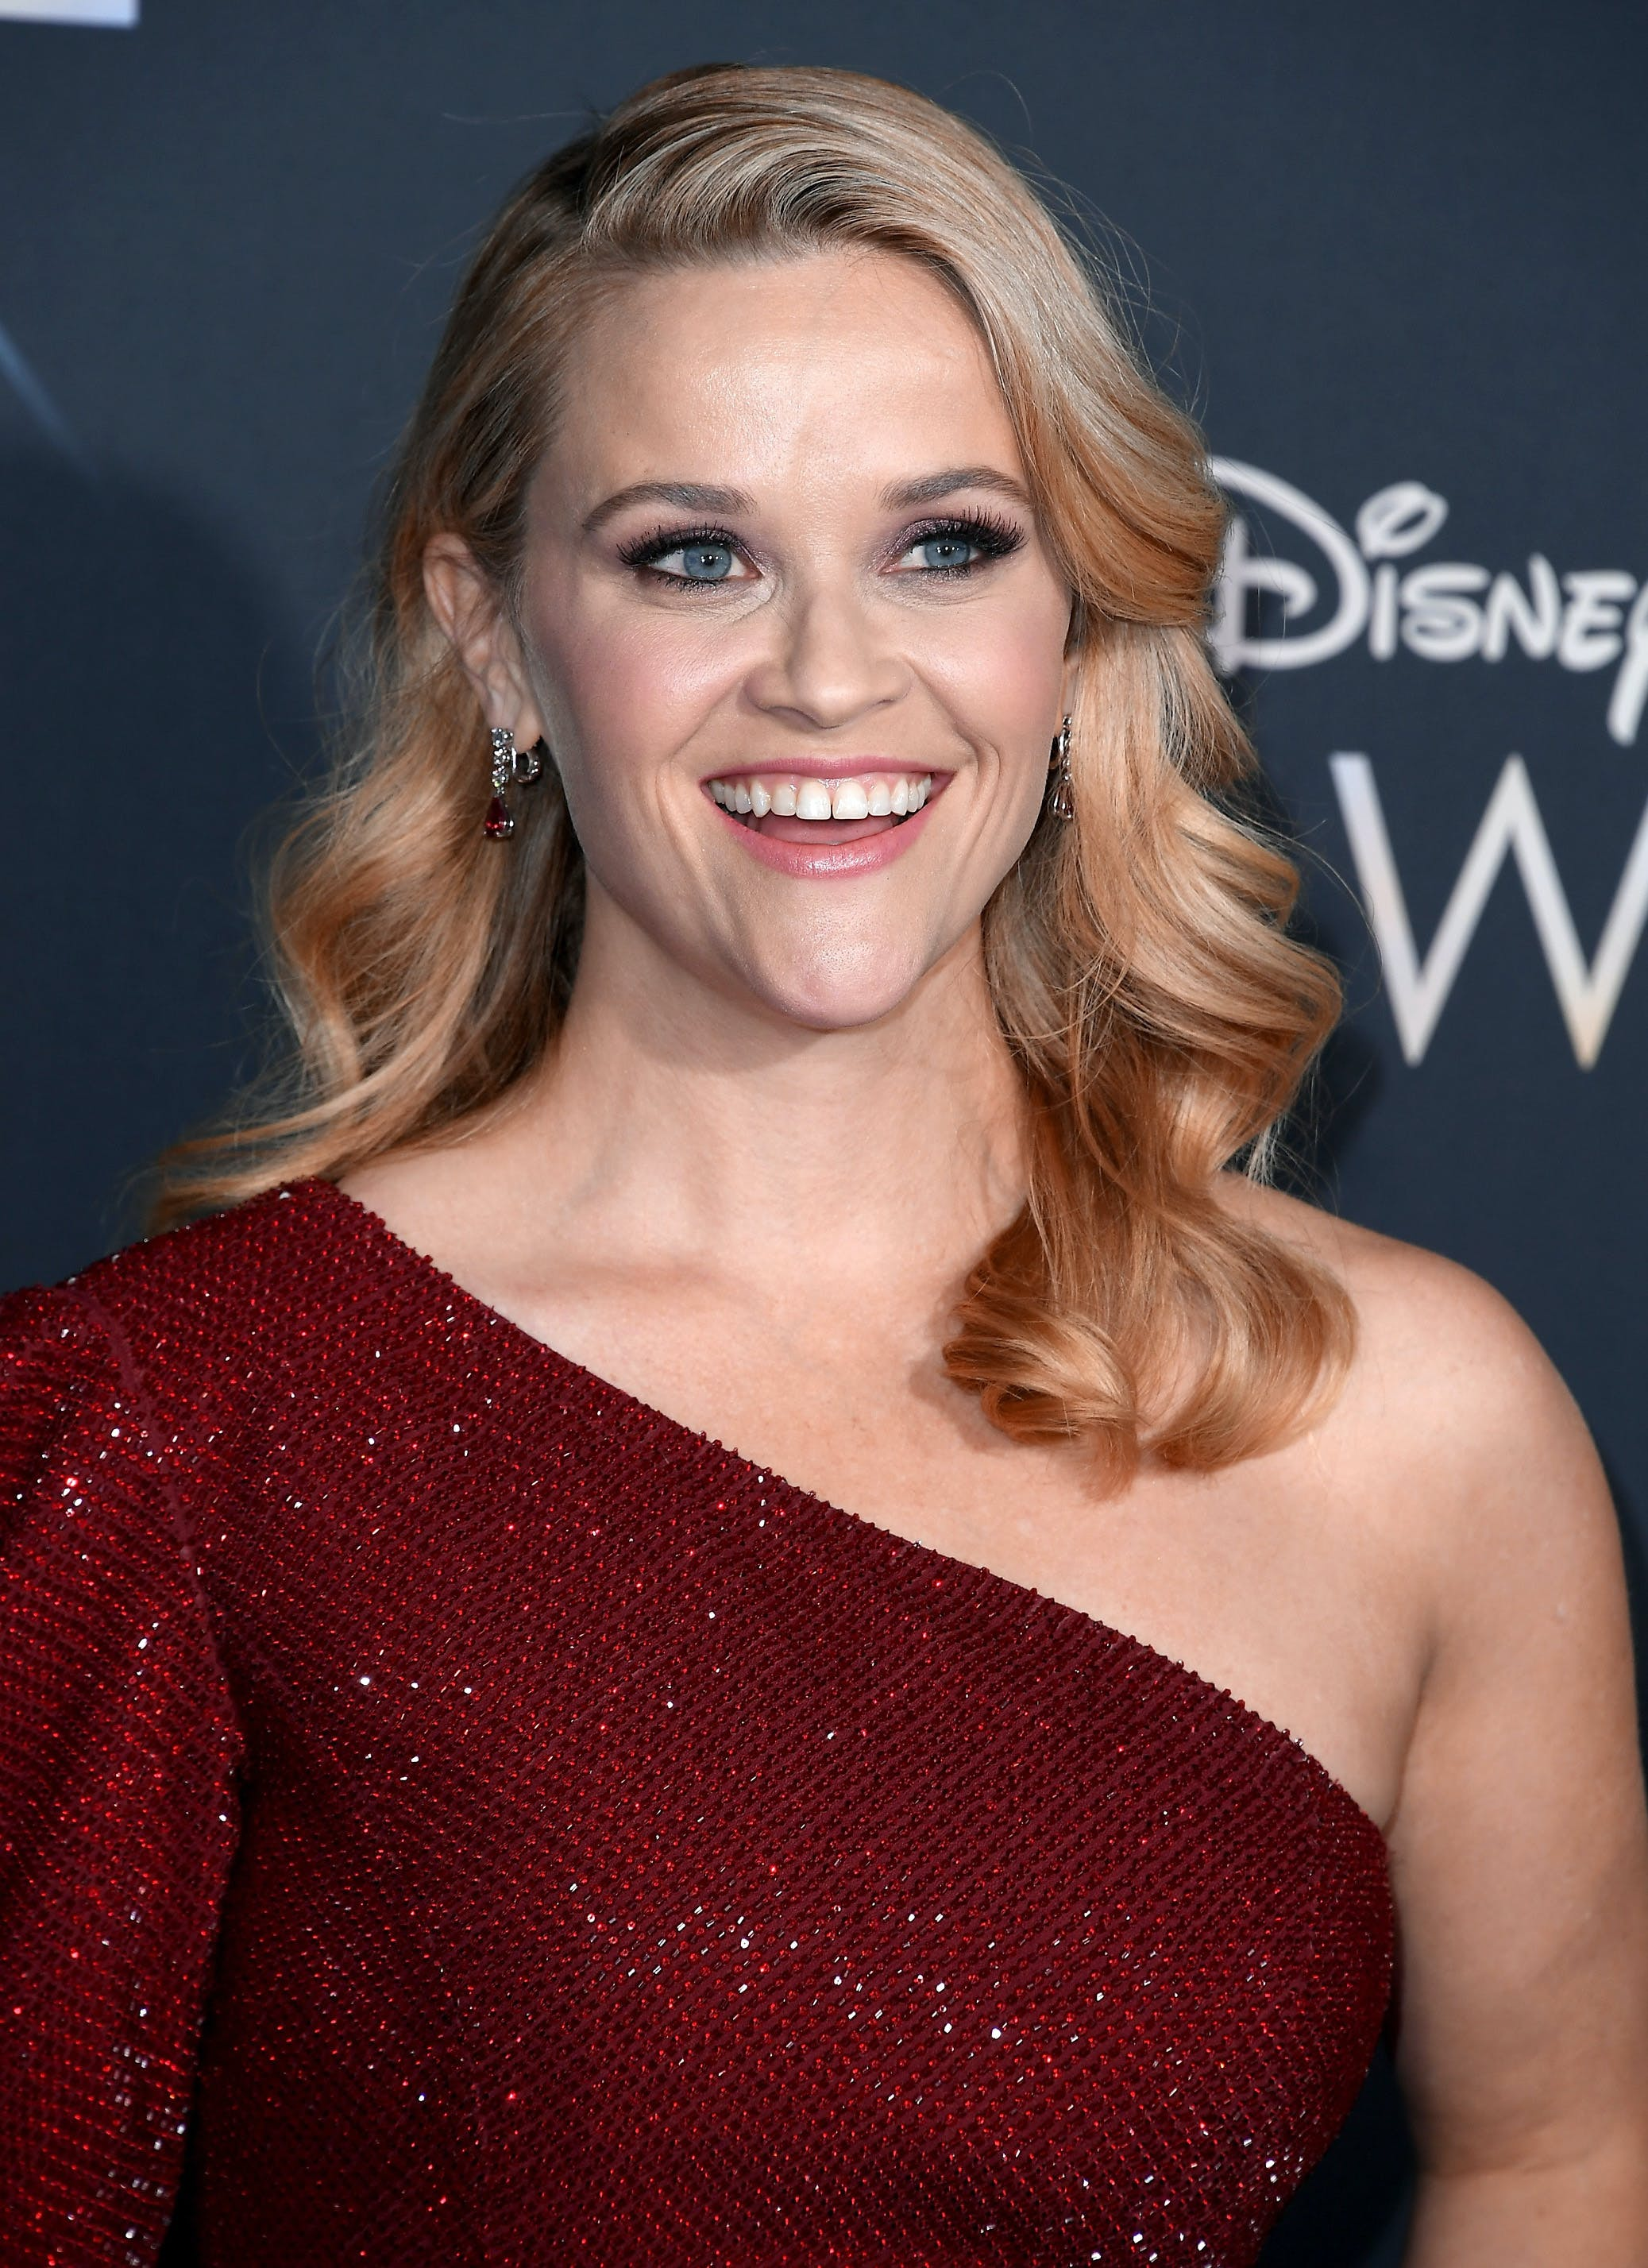 Reese Witherspoon at the premier of A Wrinkle In Time